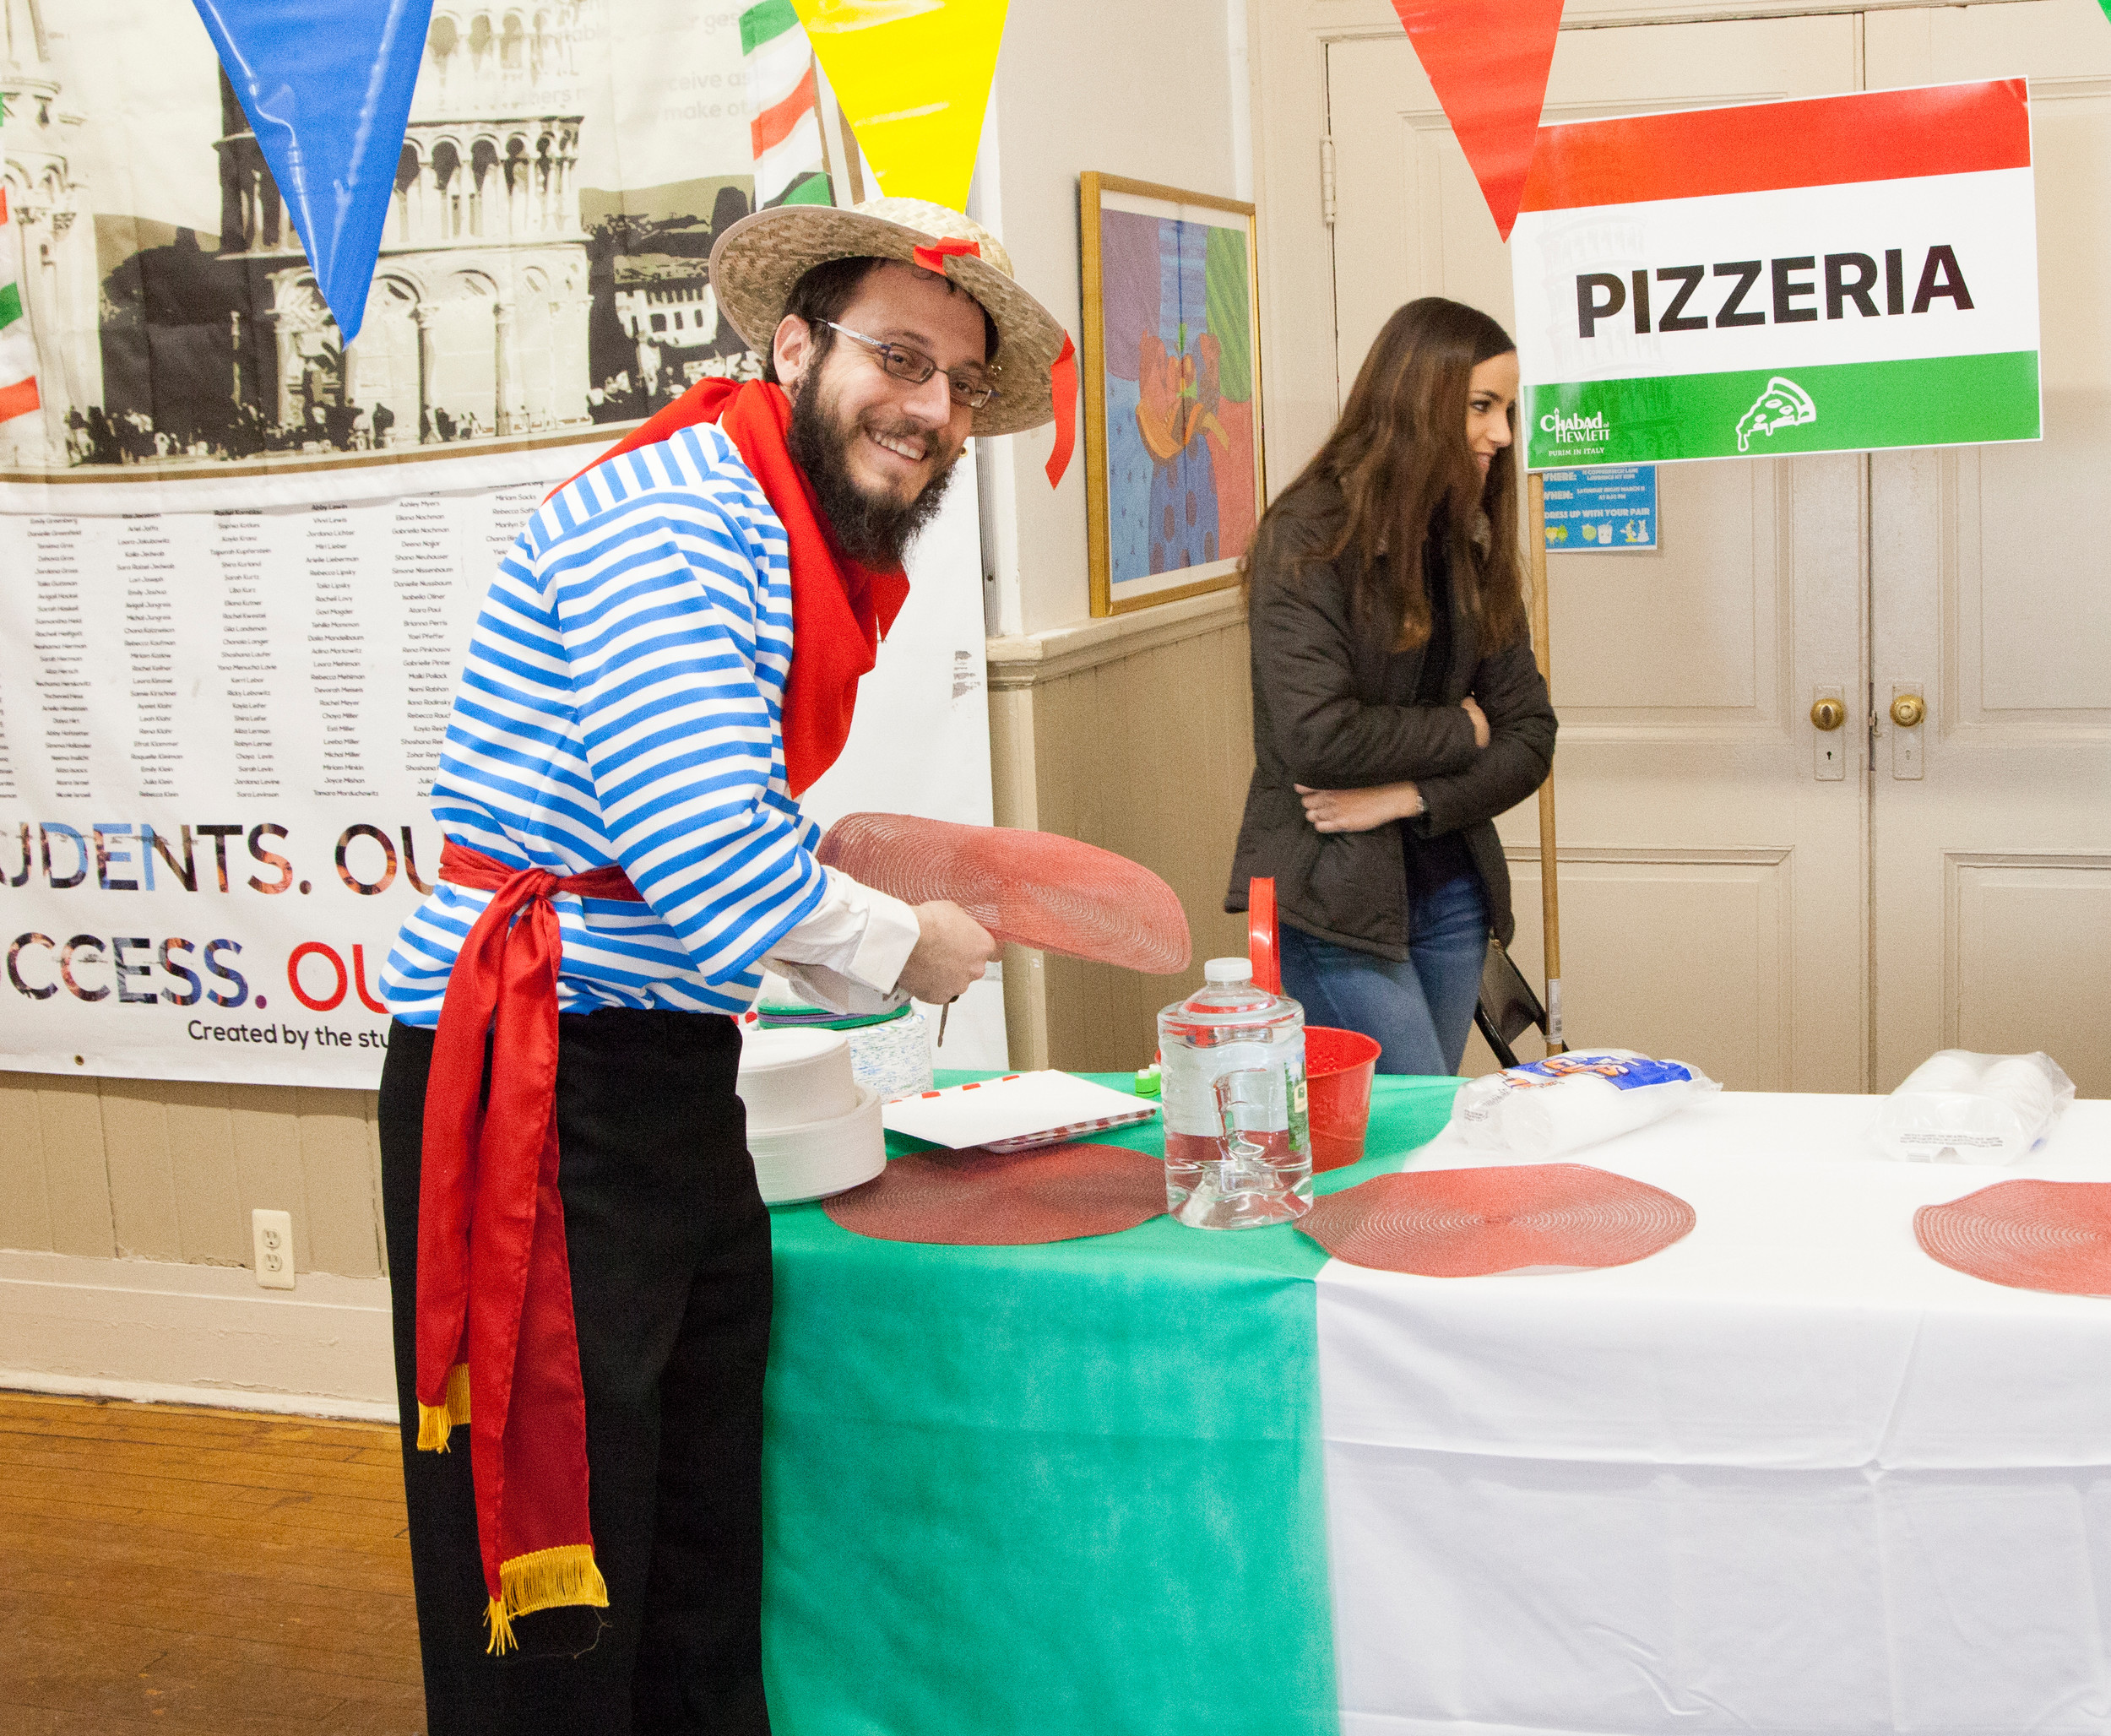 Rabbi Nochem Tenenboim opened the Pizza station at the Chabad of Hewlett's Italian-style on March 12.